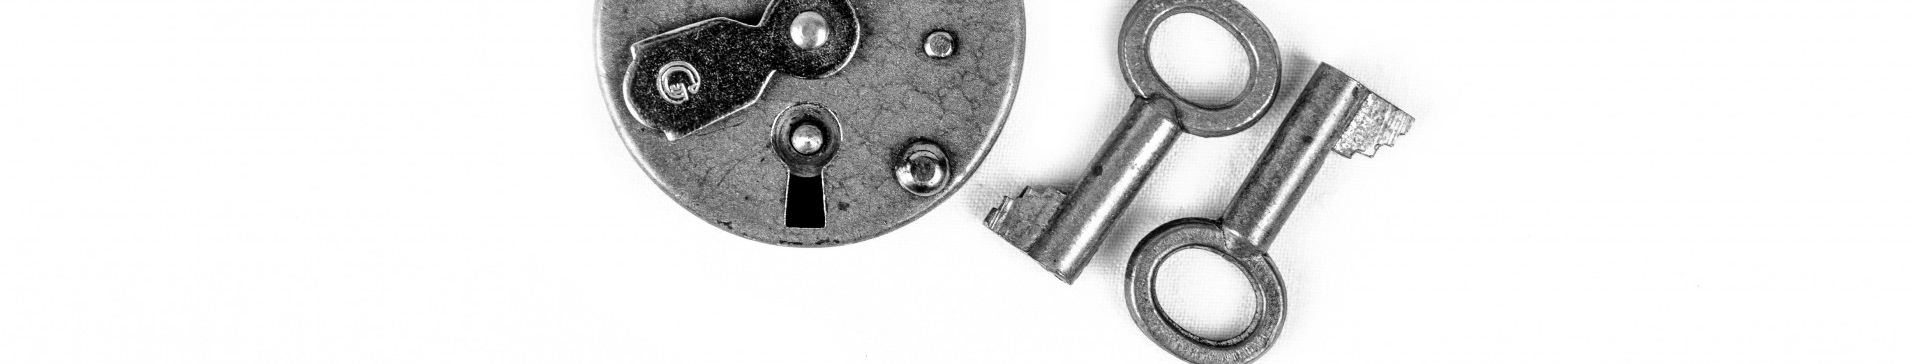 Lock and Keys header